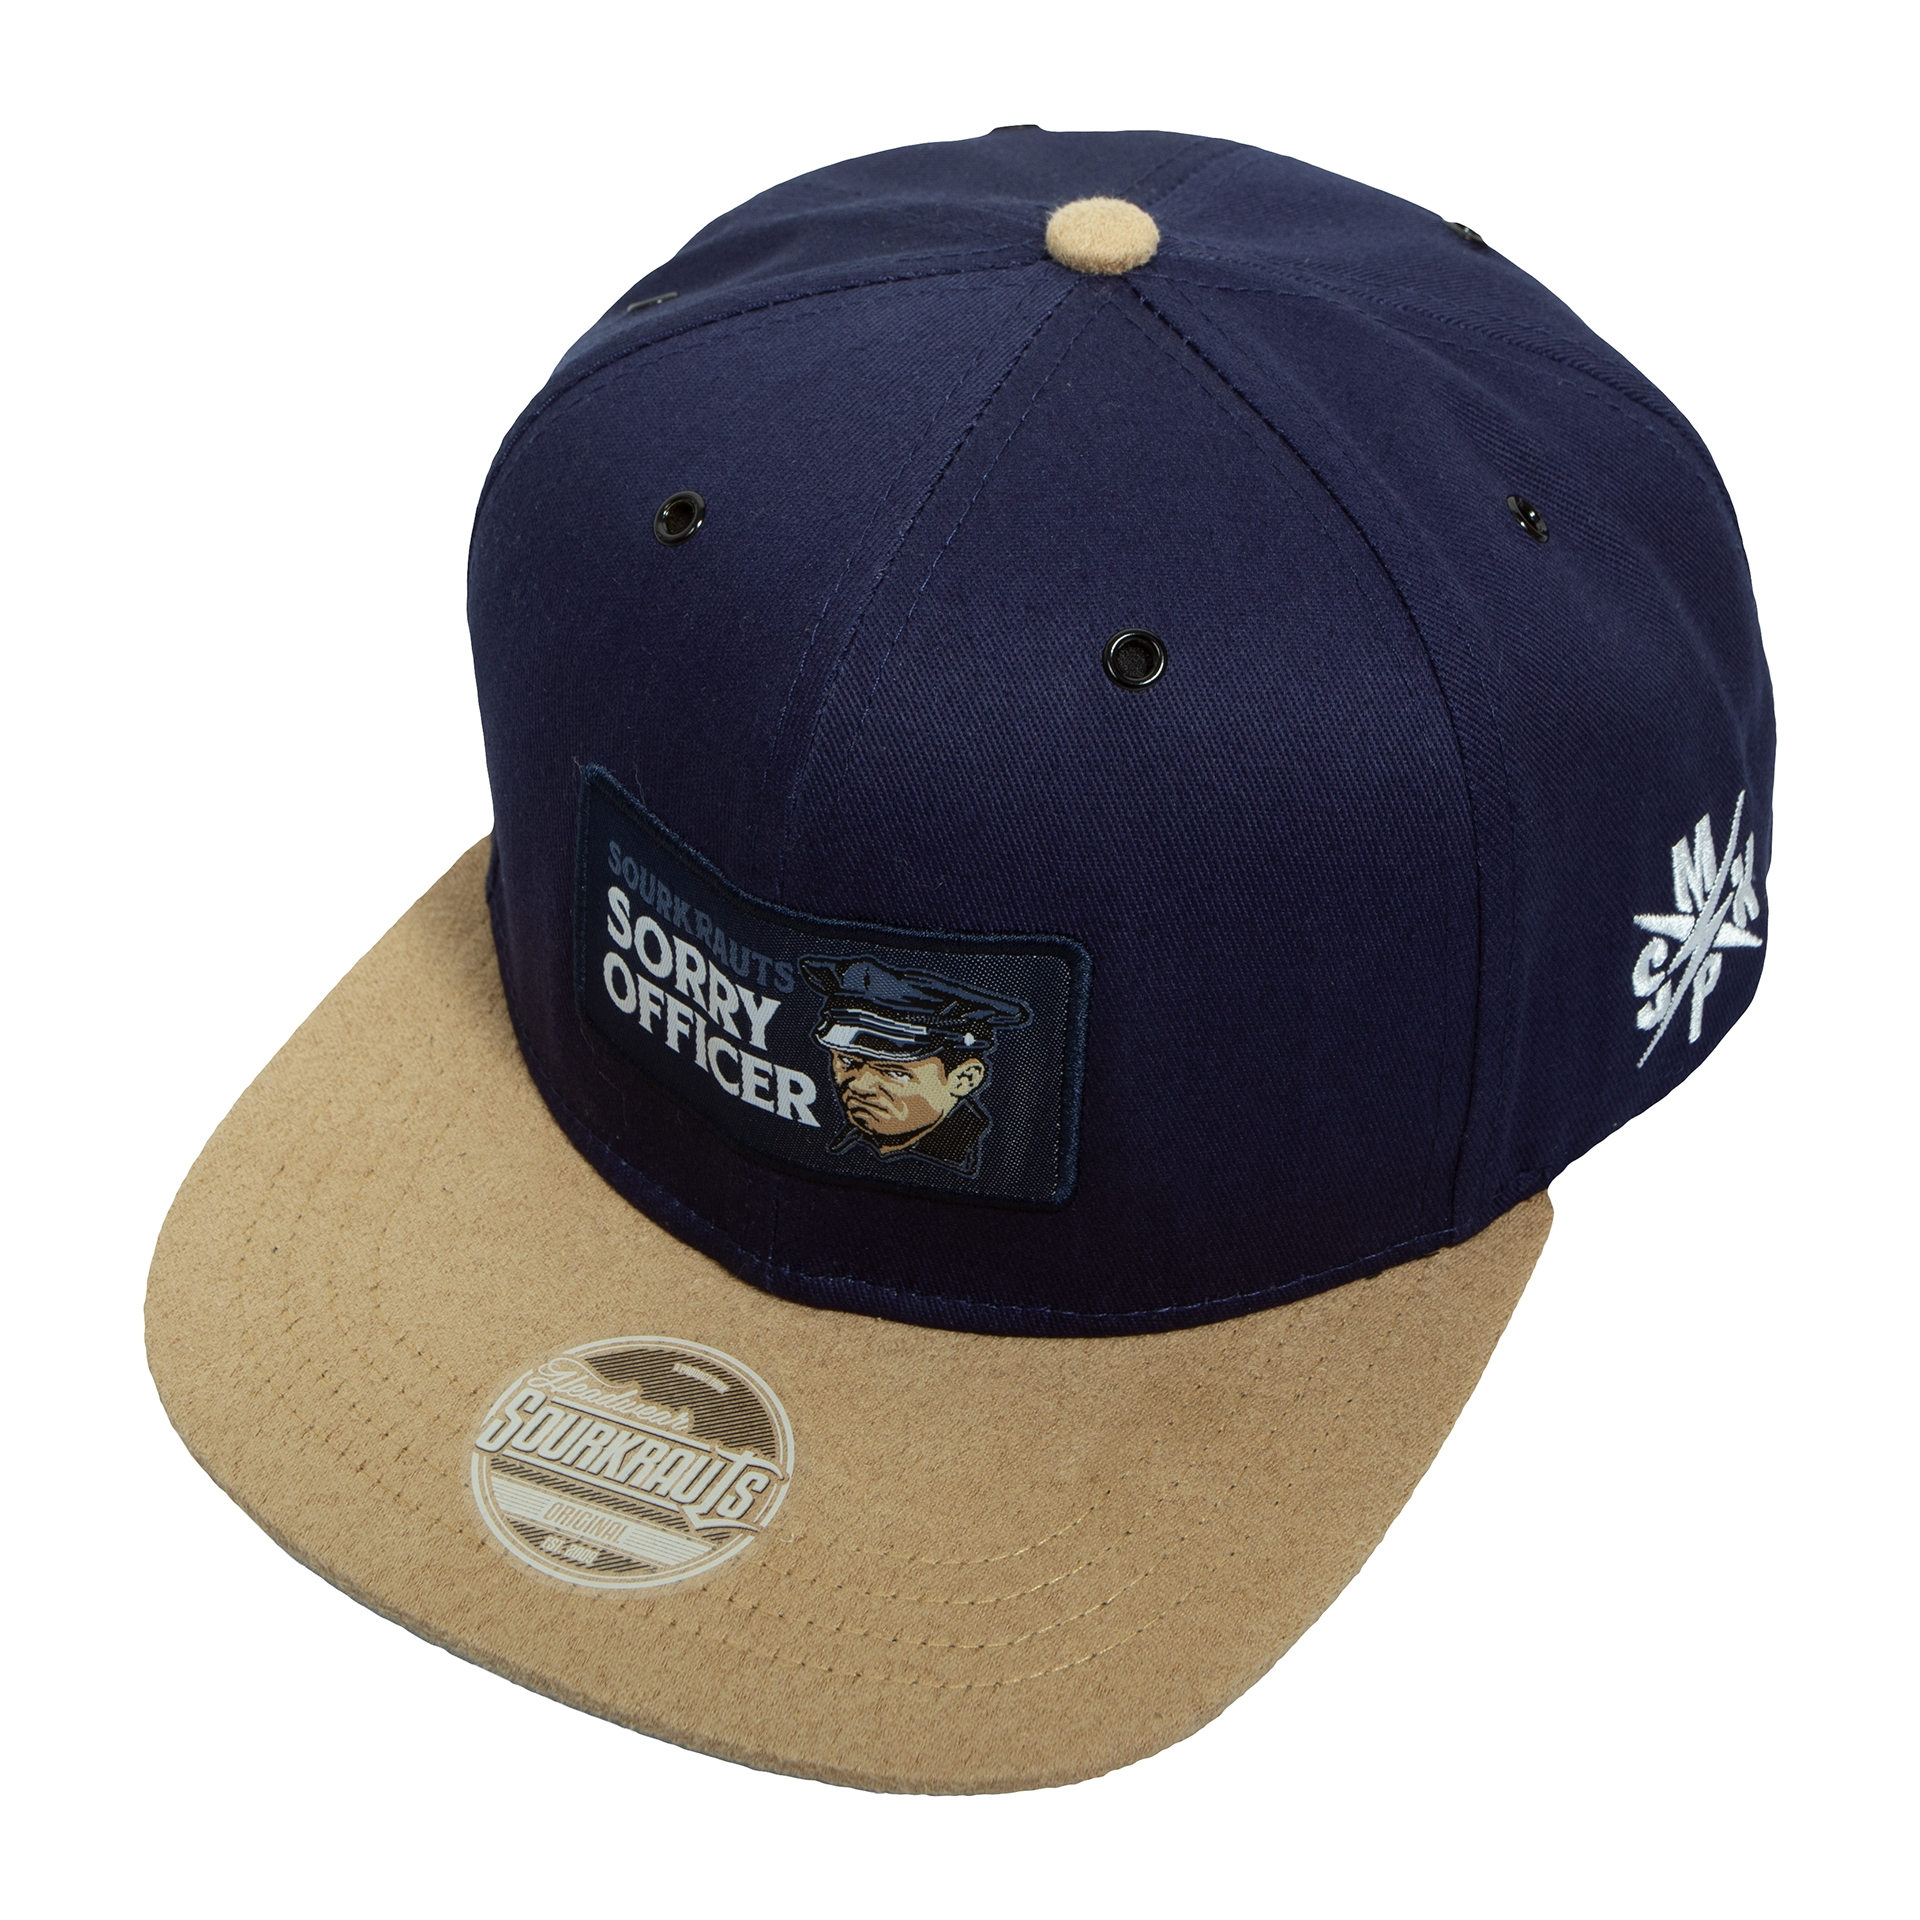 Snapback | Sorry Officer | Blau